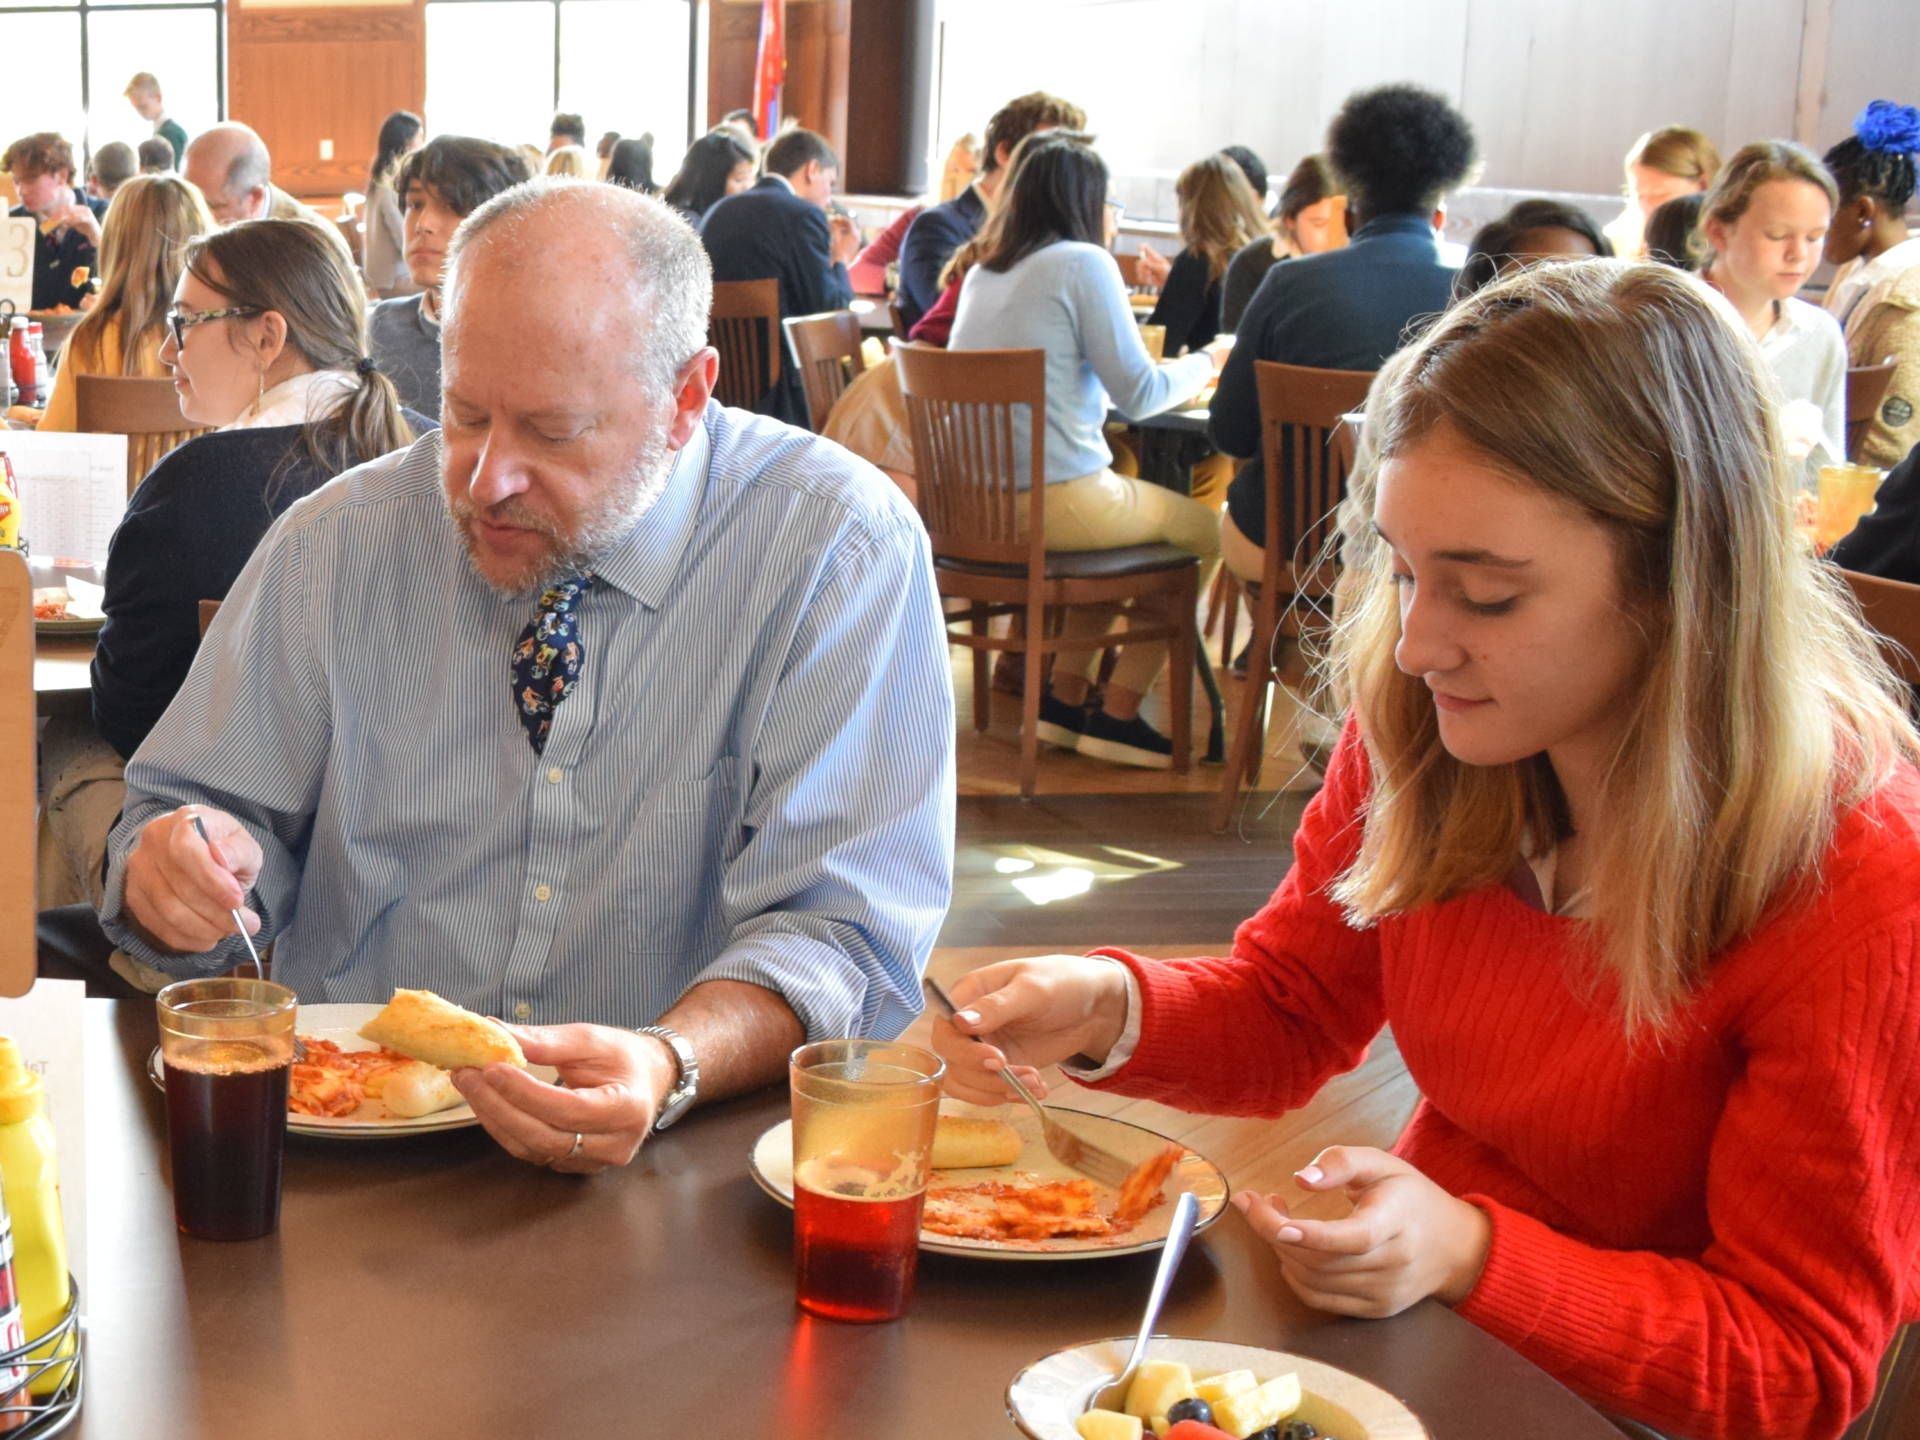 How Assigned Seats During Lunchtime Can Foster a Positive School Culture